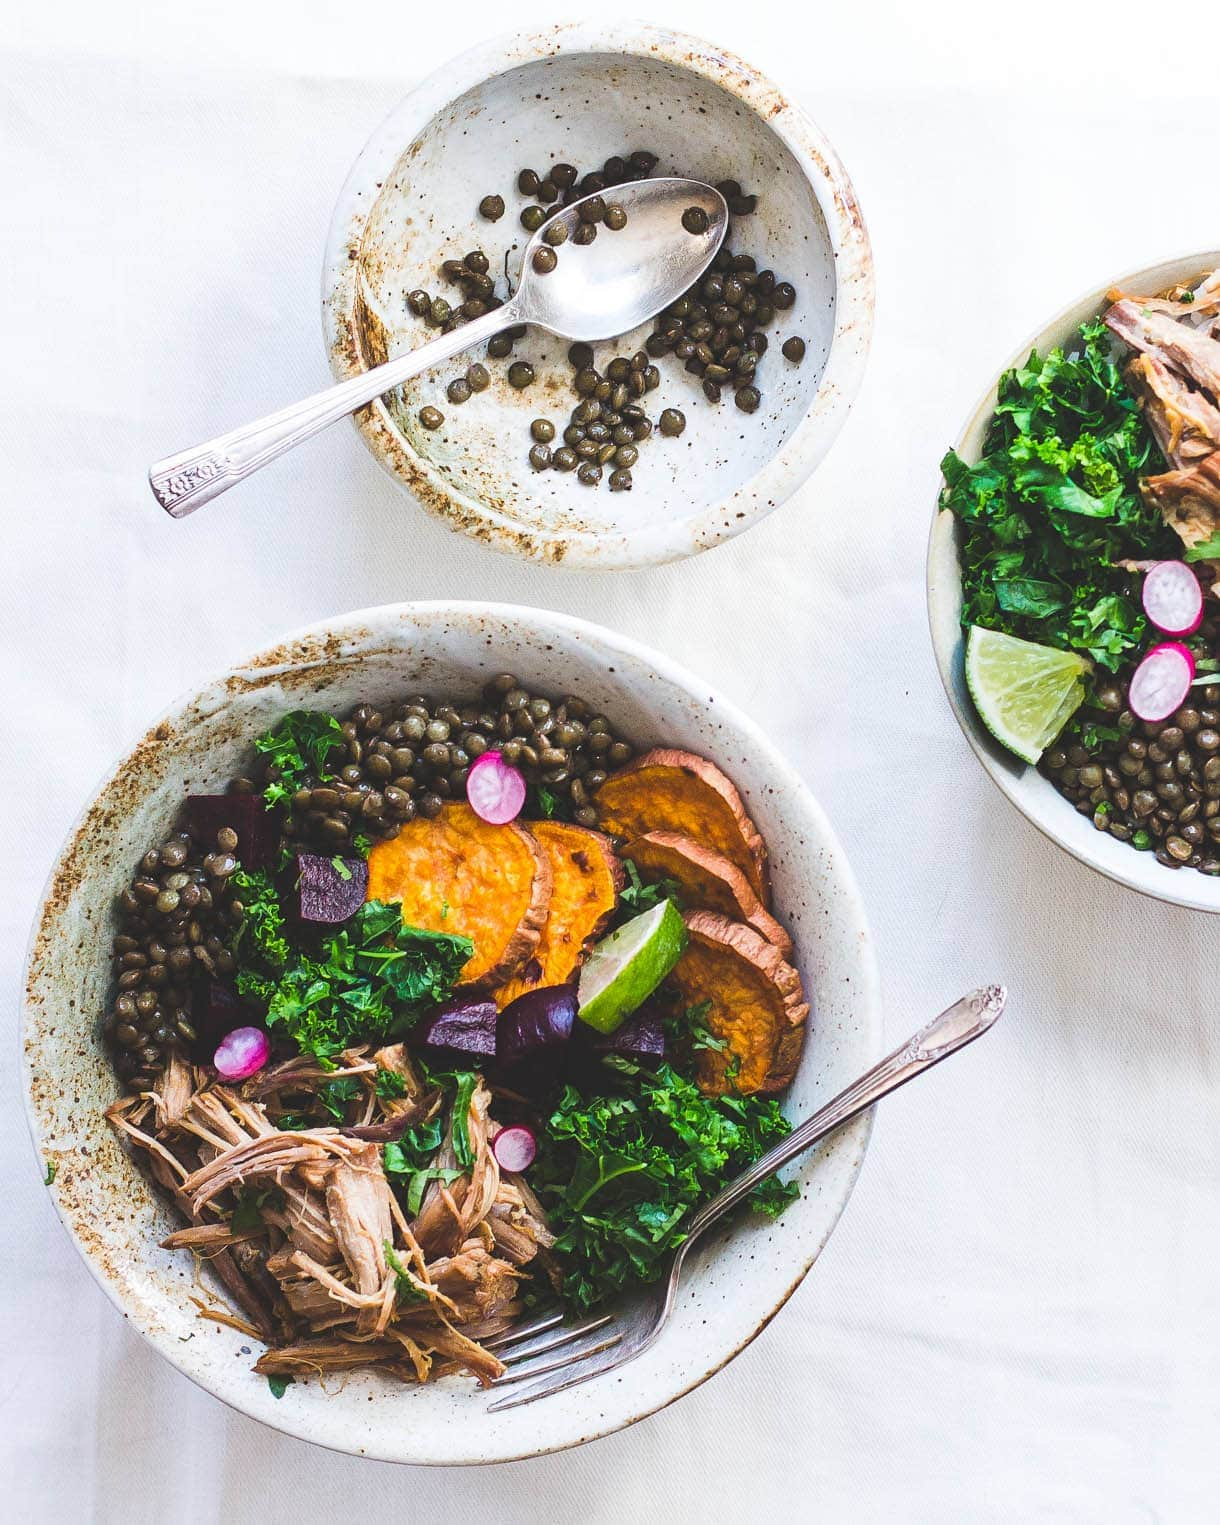 Wholesome Lentil Protein Bowls ~ made with roasted vegatables, steamed greens. basically leftovers!